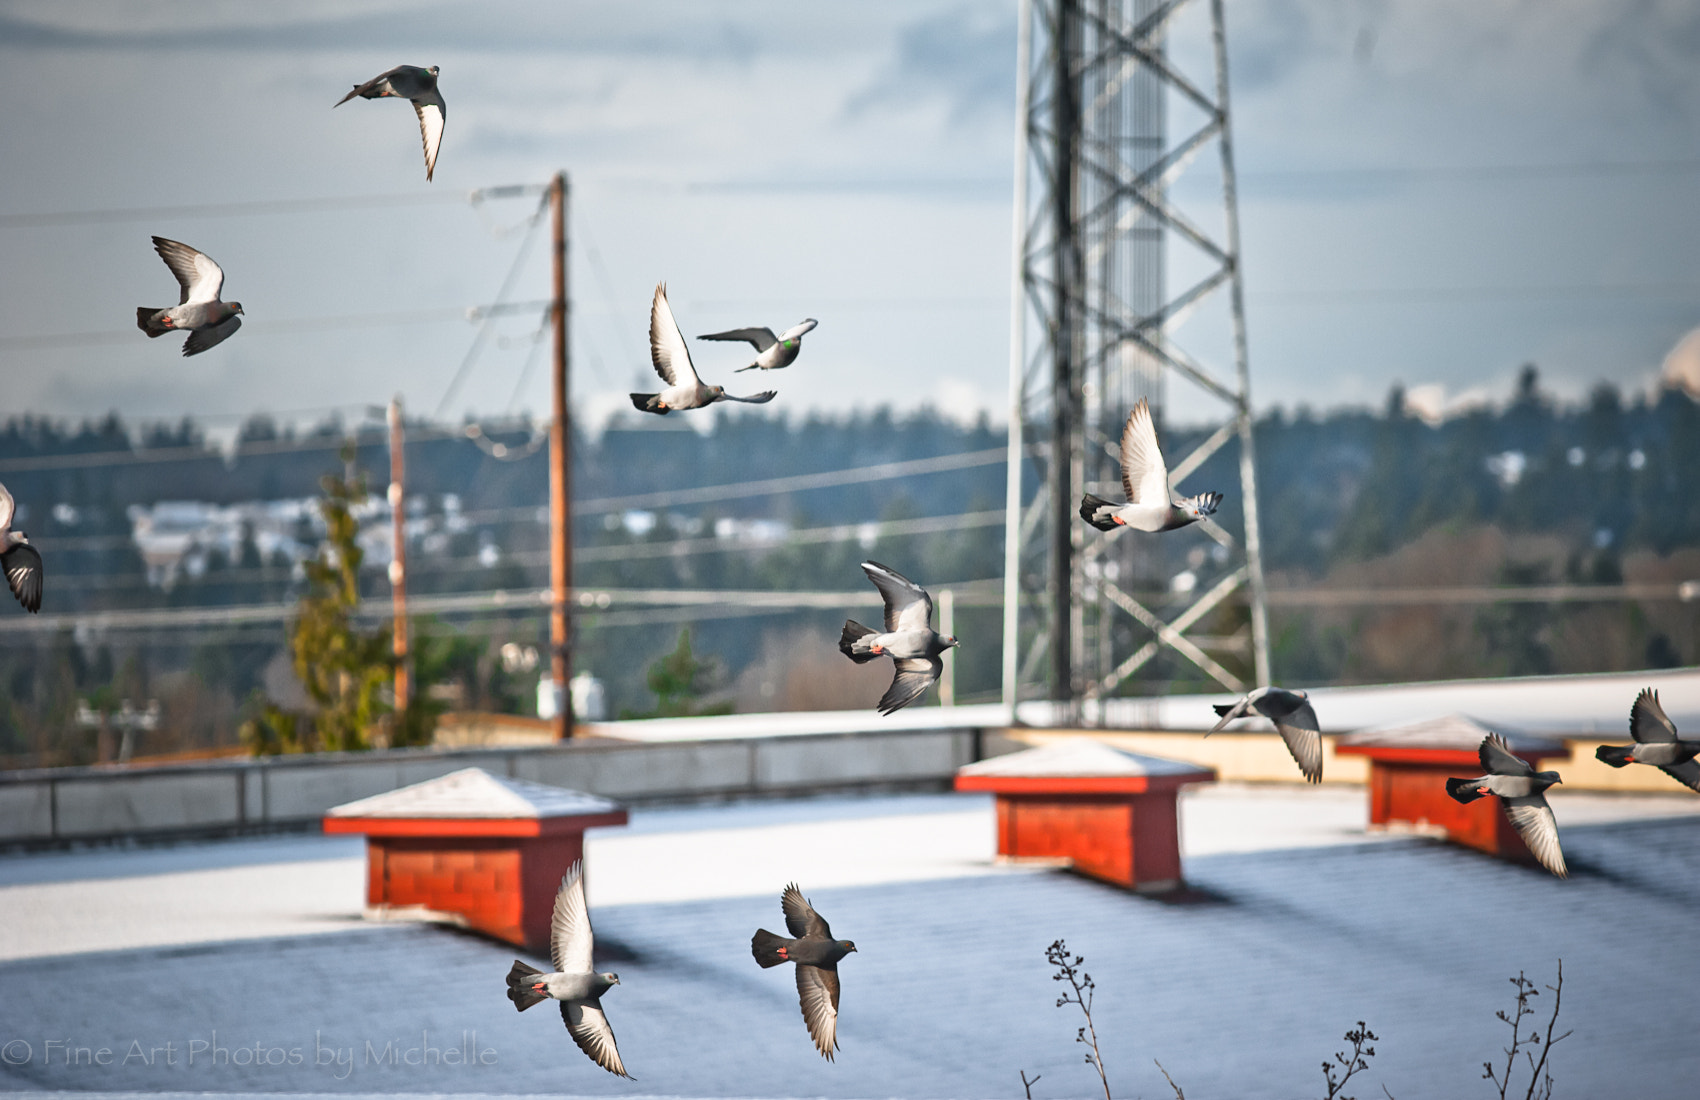 Photograph Pigeon Flight by Michelle Stevenson on 500px